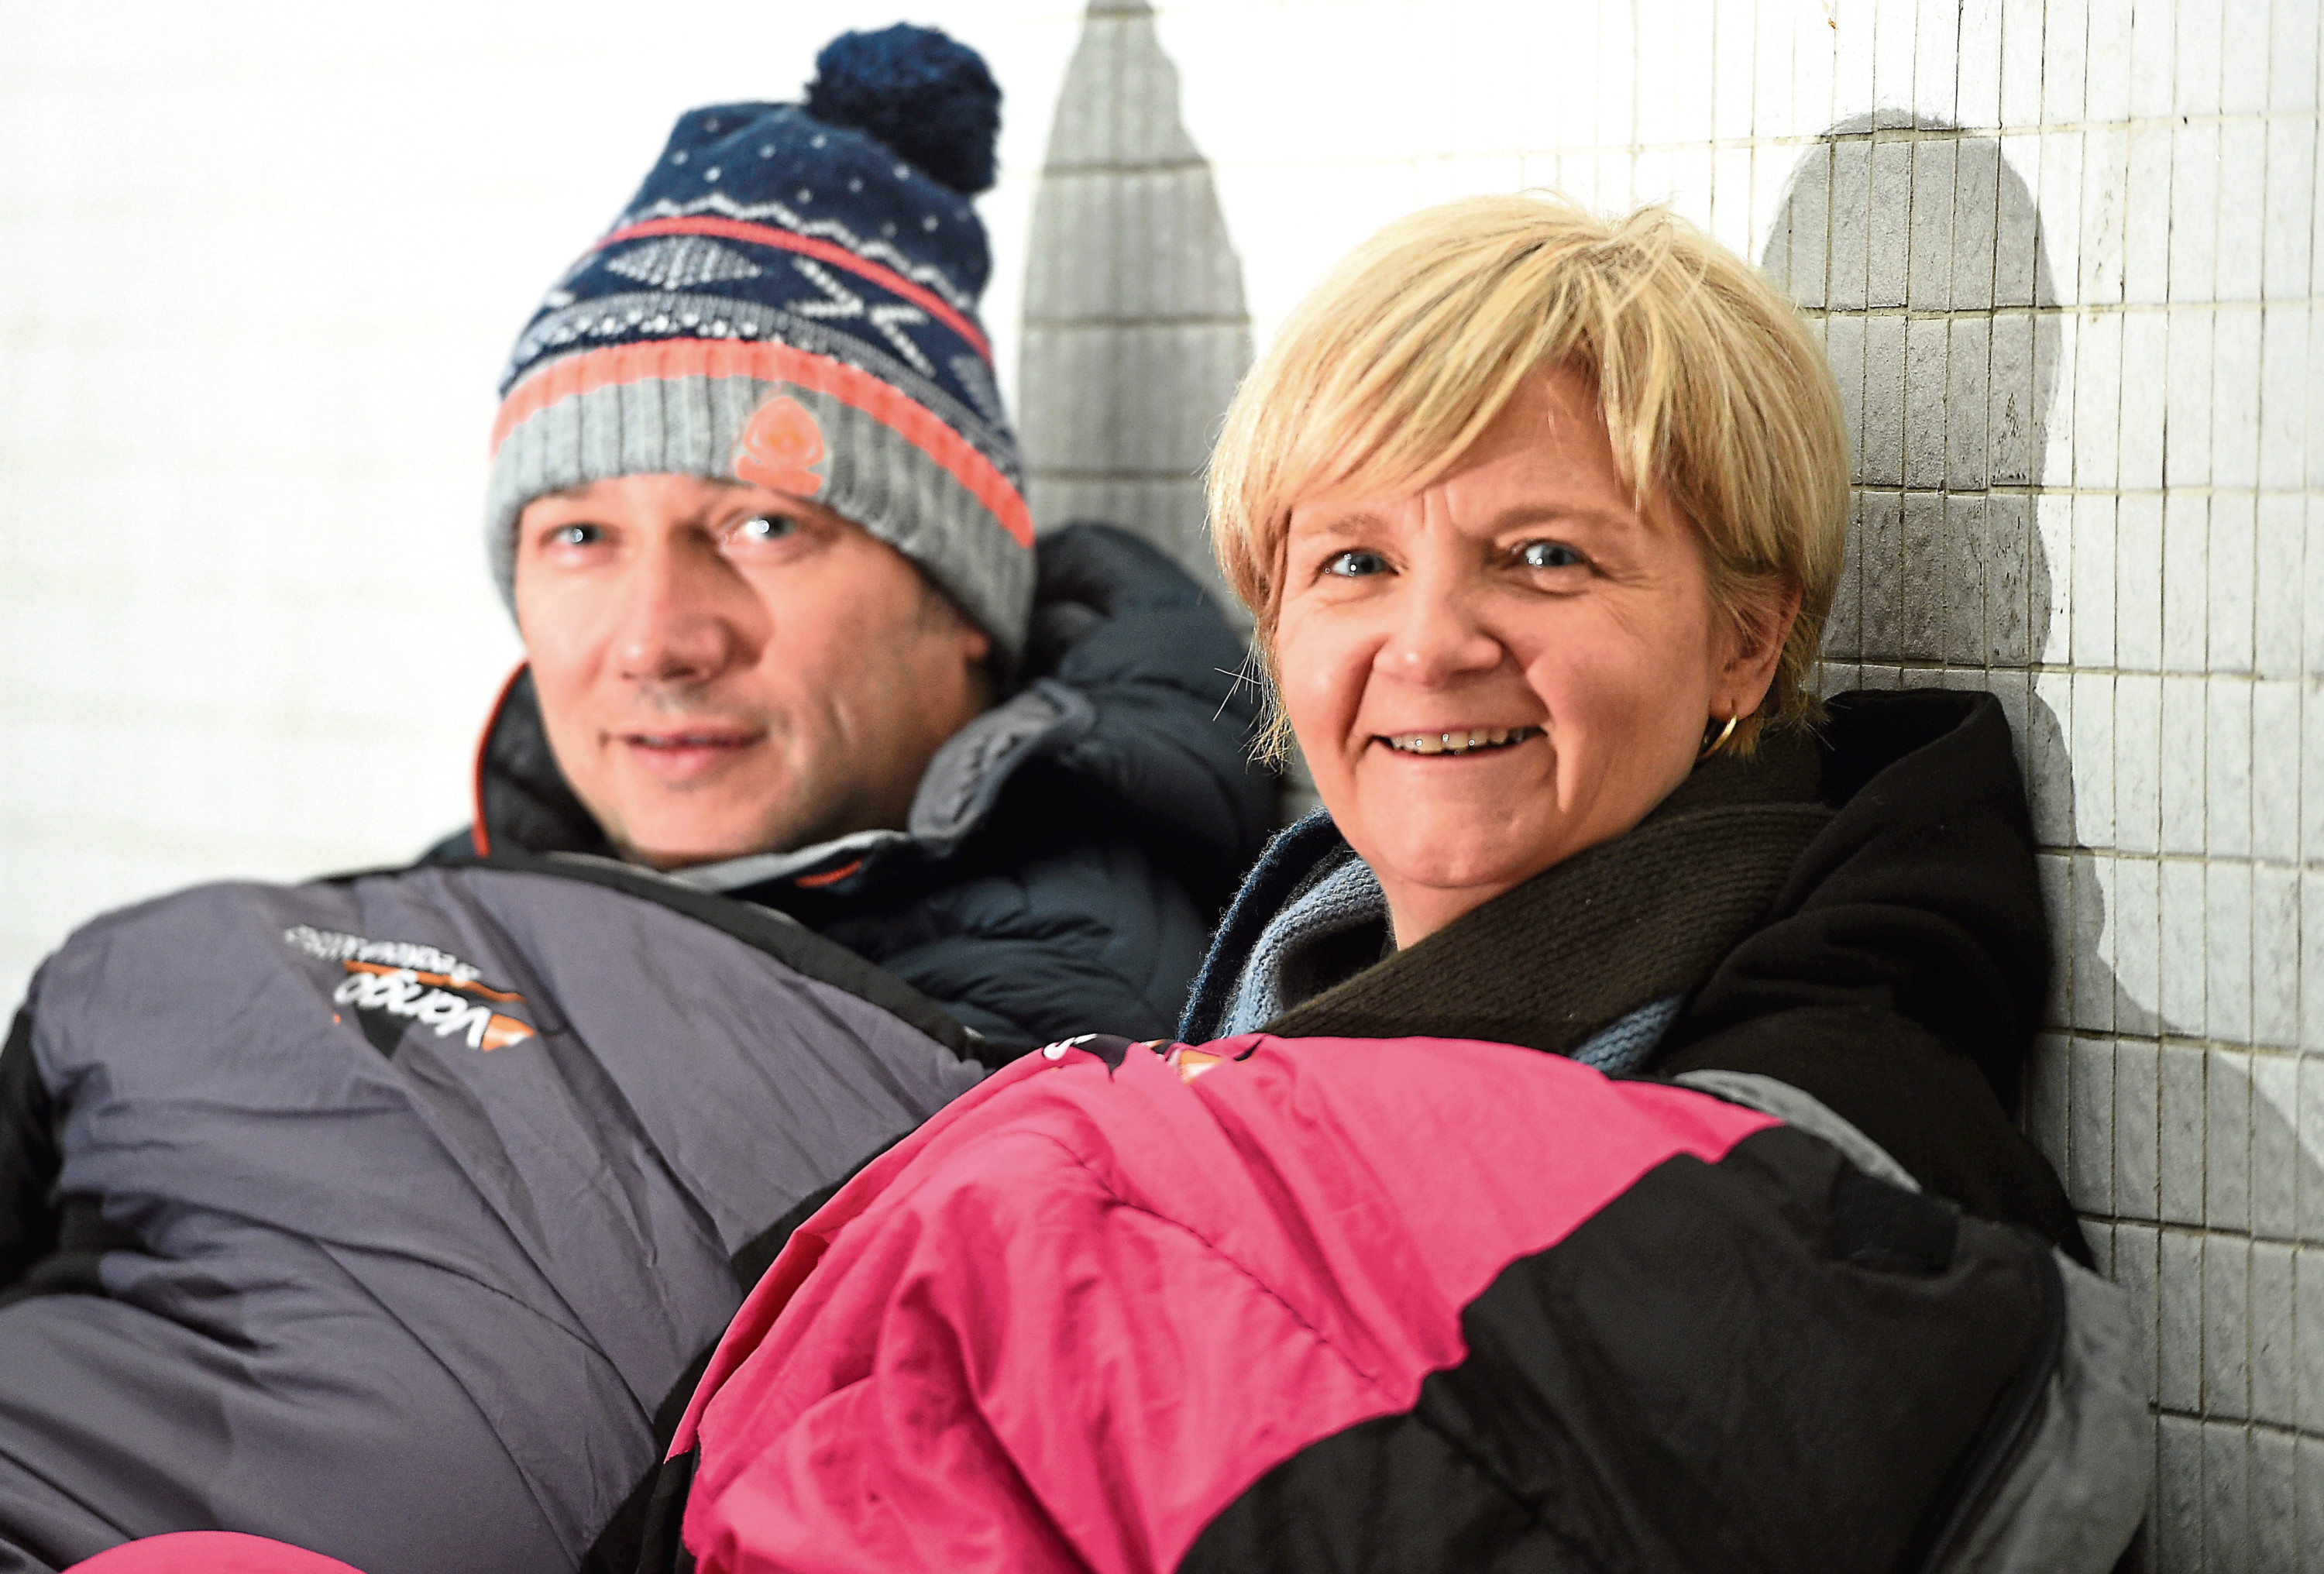 Pictured are Douglas Lumsden and Jenny Laing (both Aberdeen City Council co-leaders) ahead of the Big Sleep Out this weekend. Picture by DARRELL BENNS     Pictured on 06/12/2018